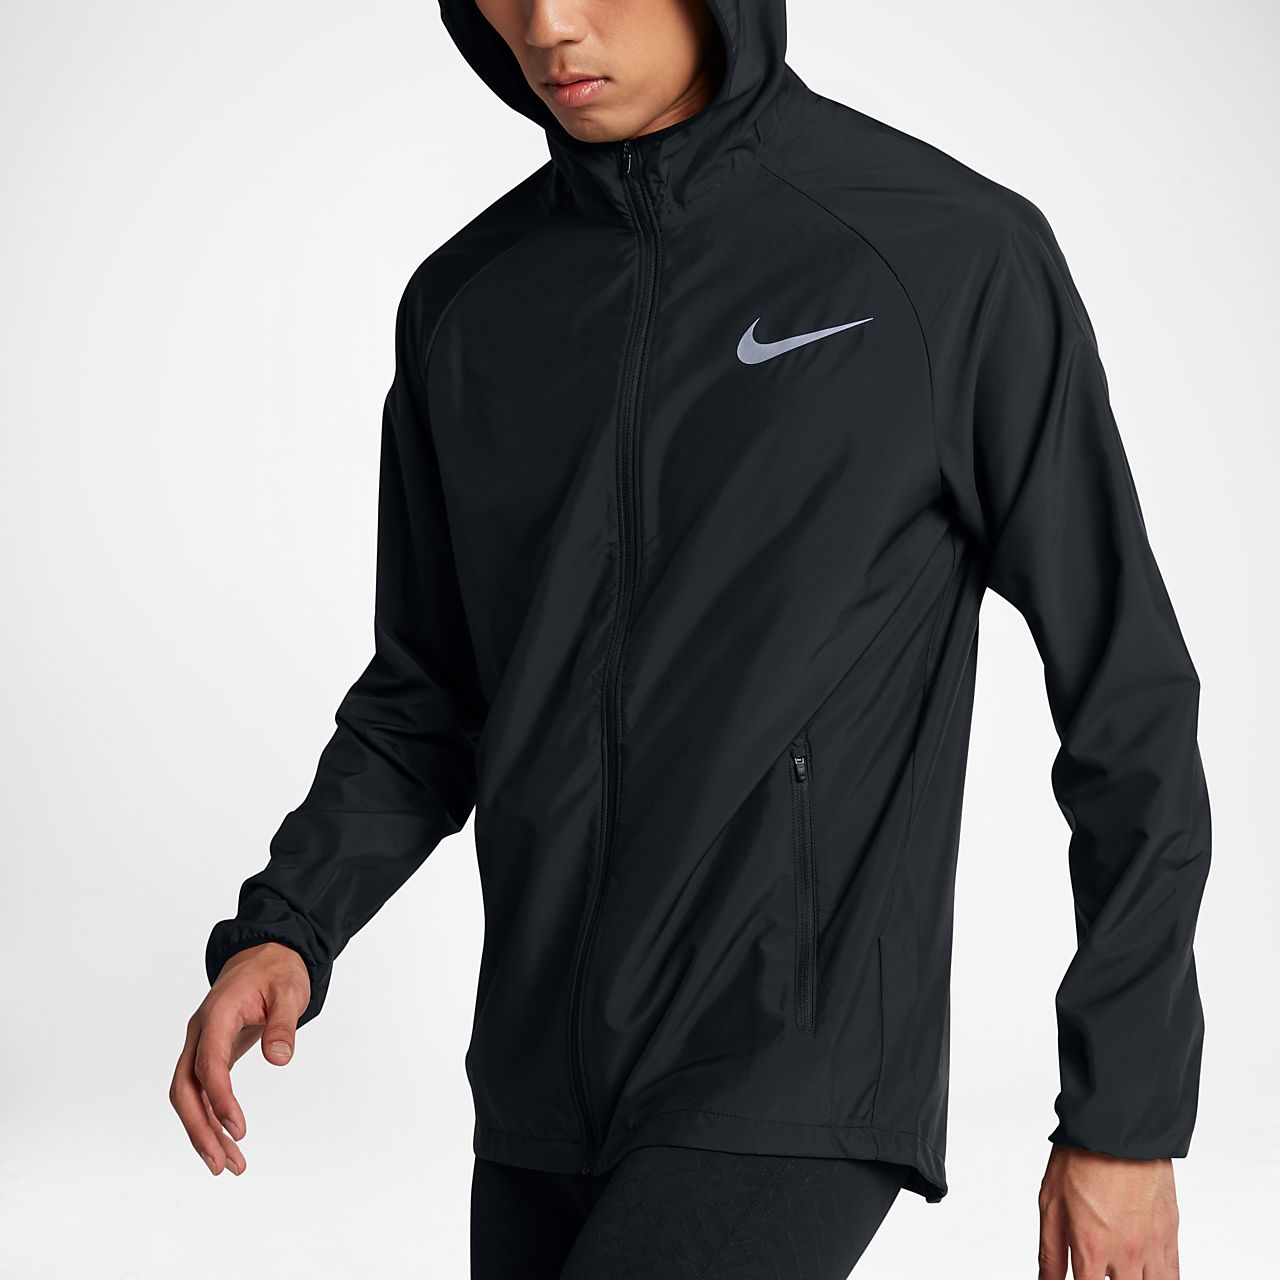 Low Resolution Nike Essential Men's Running Jacket Nike Essential Men's  Running Jacket